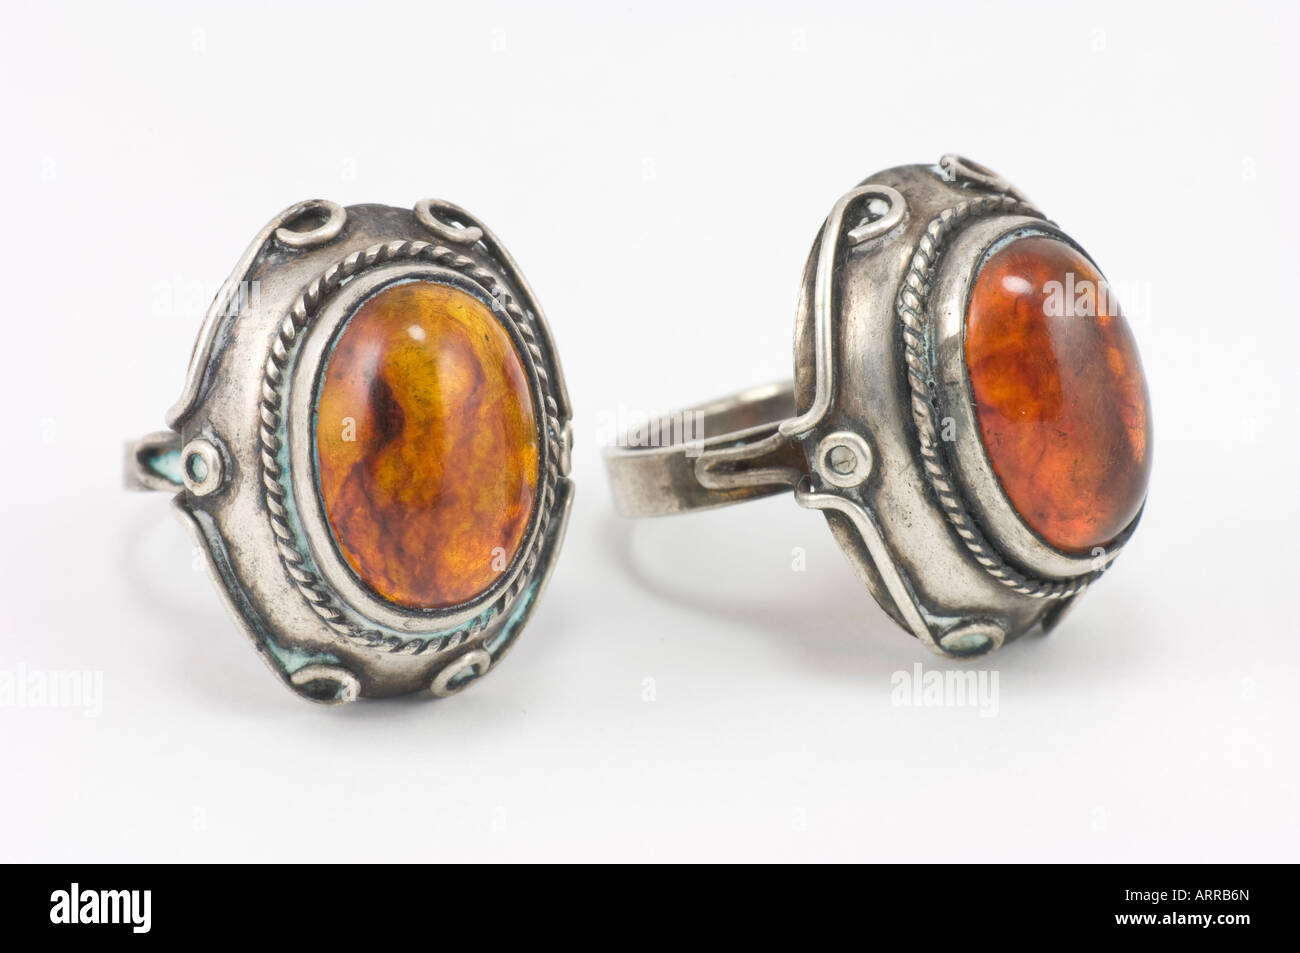 antique amber ring jewelry tarnished old - Stock Image